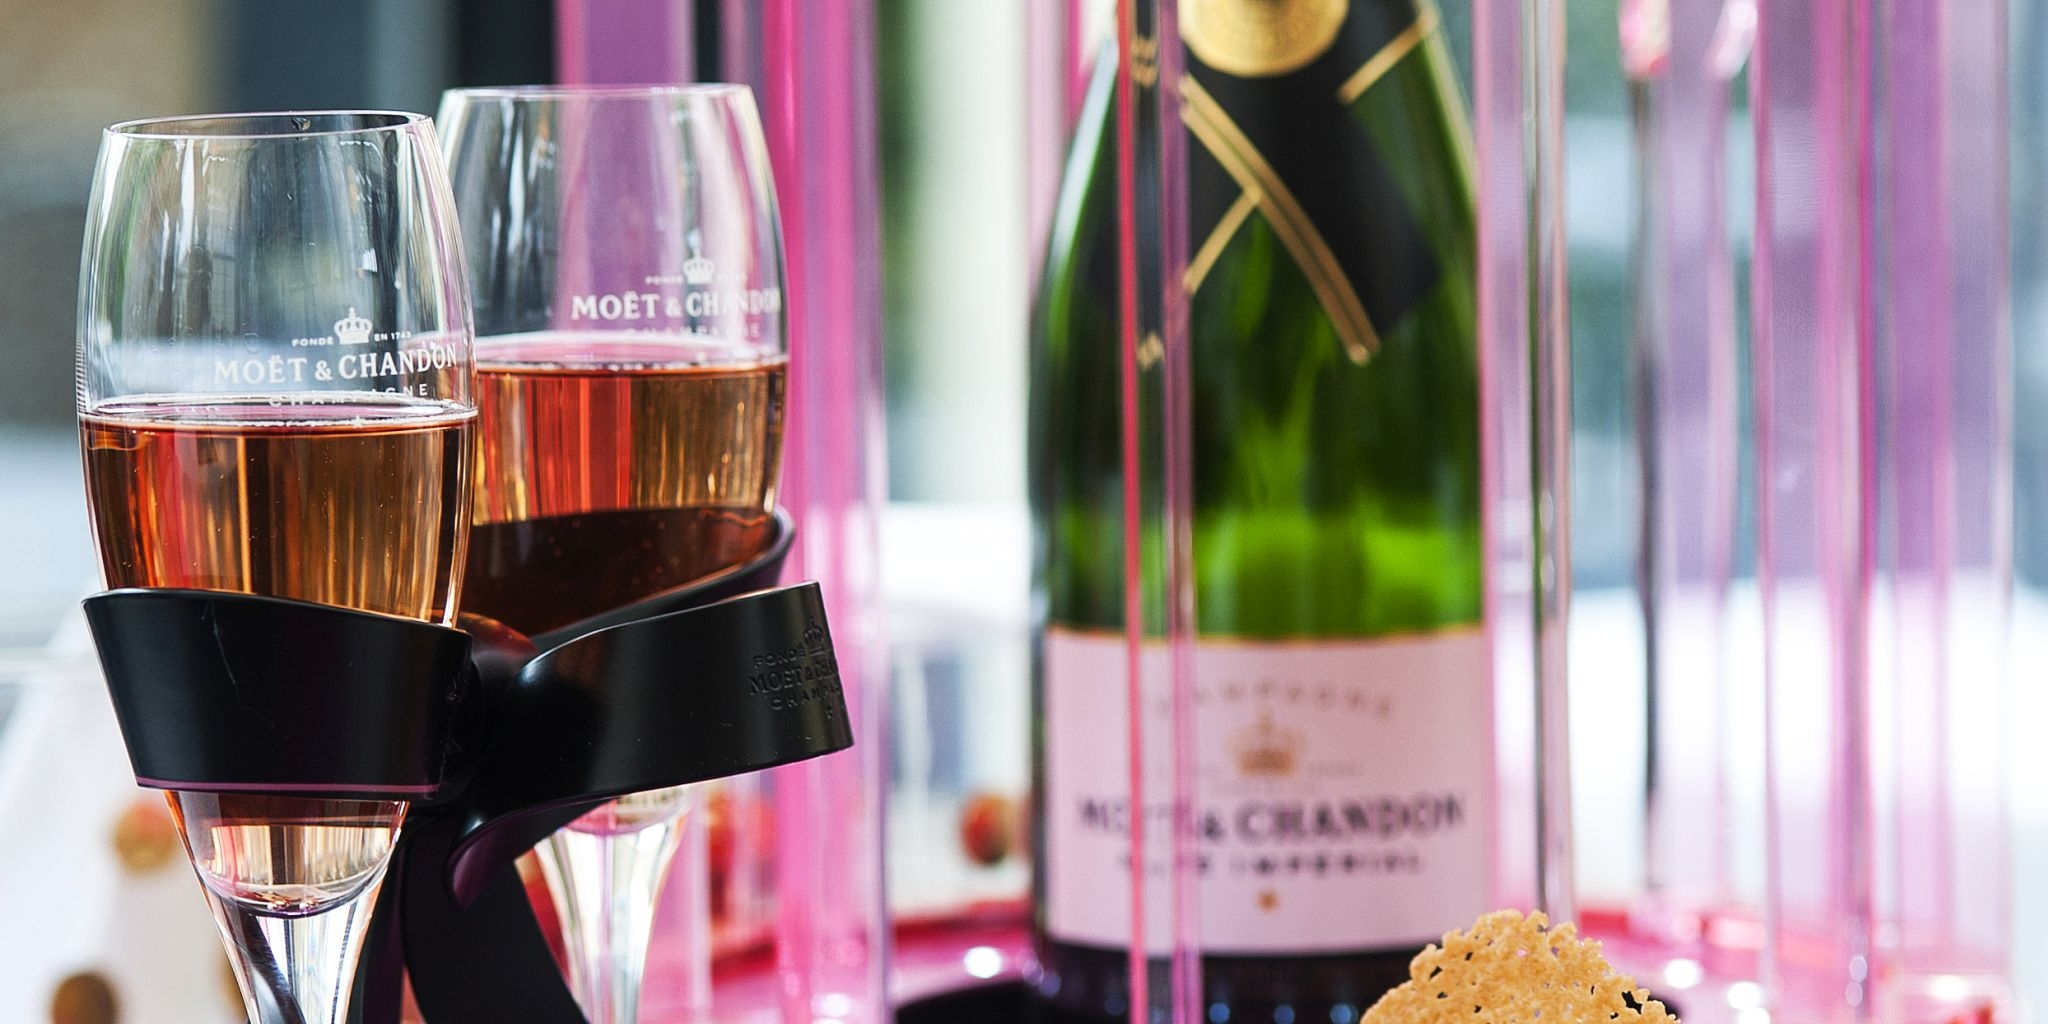 Le Bistro and Moët & Chandon celebrate the joys of love throughout the month of true romance